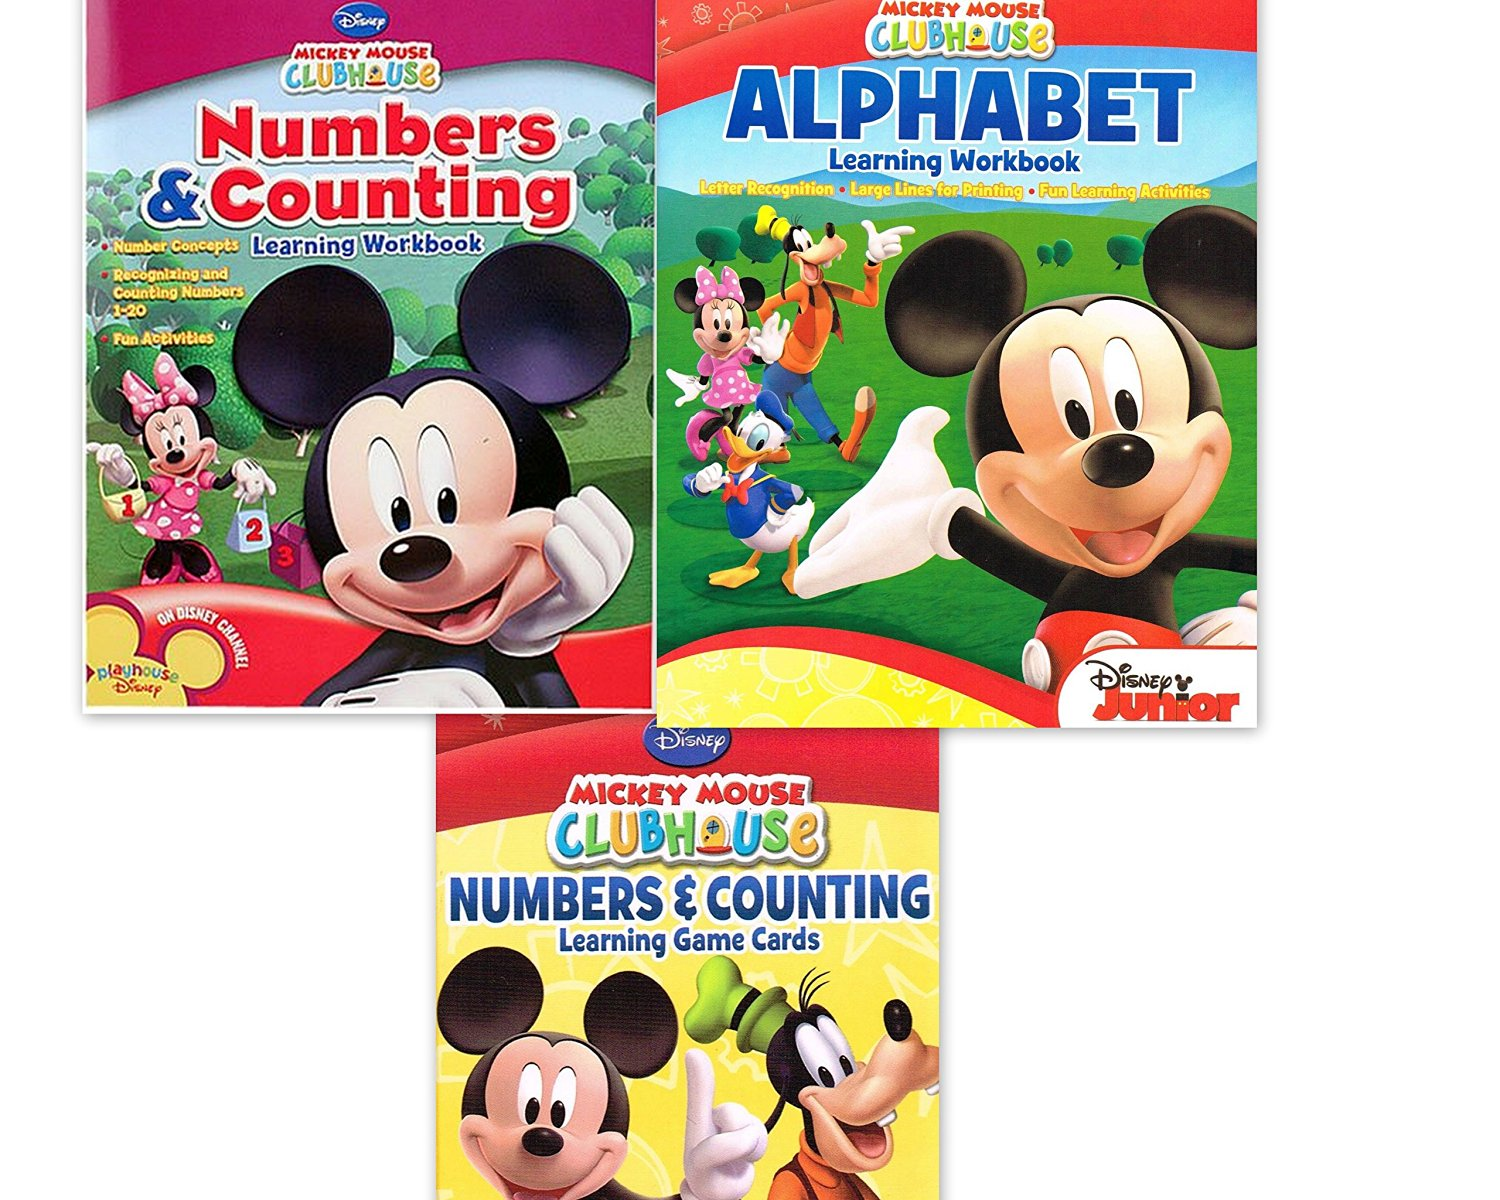 Mickey Mouse Clubhouse Workbook and Flashcard Learning Bundle (Set of 3) includes (1) Numbers & Counting Learning Flash Cards + (1) Alphabet Learning Workbook + (1) Numbers and Counting Learning Workbook